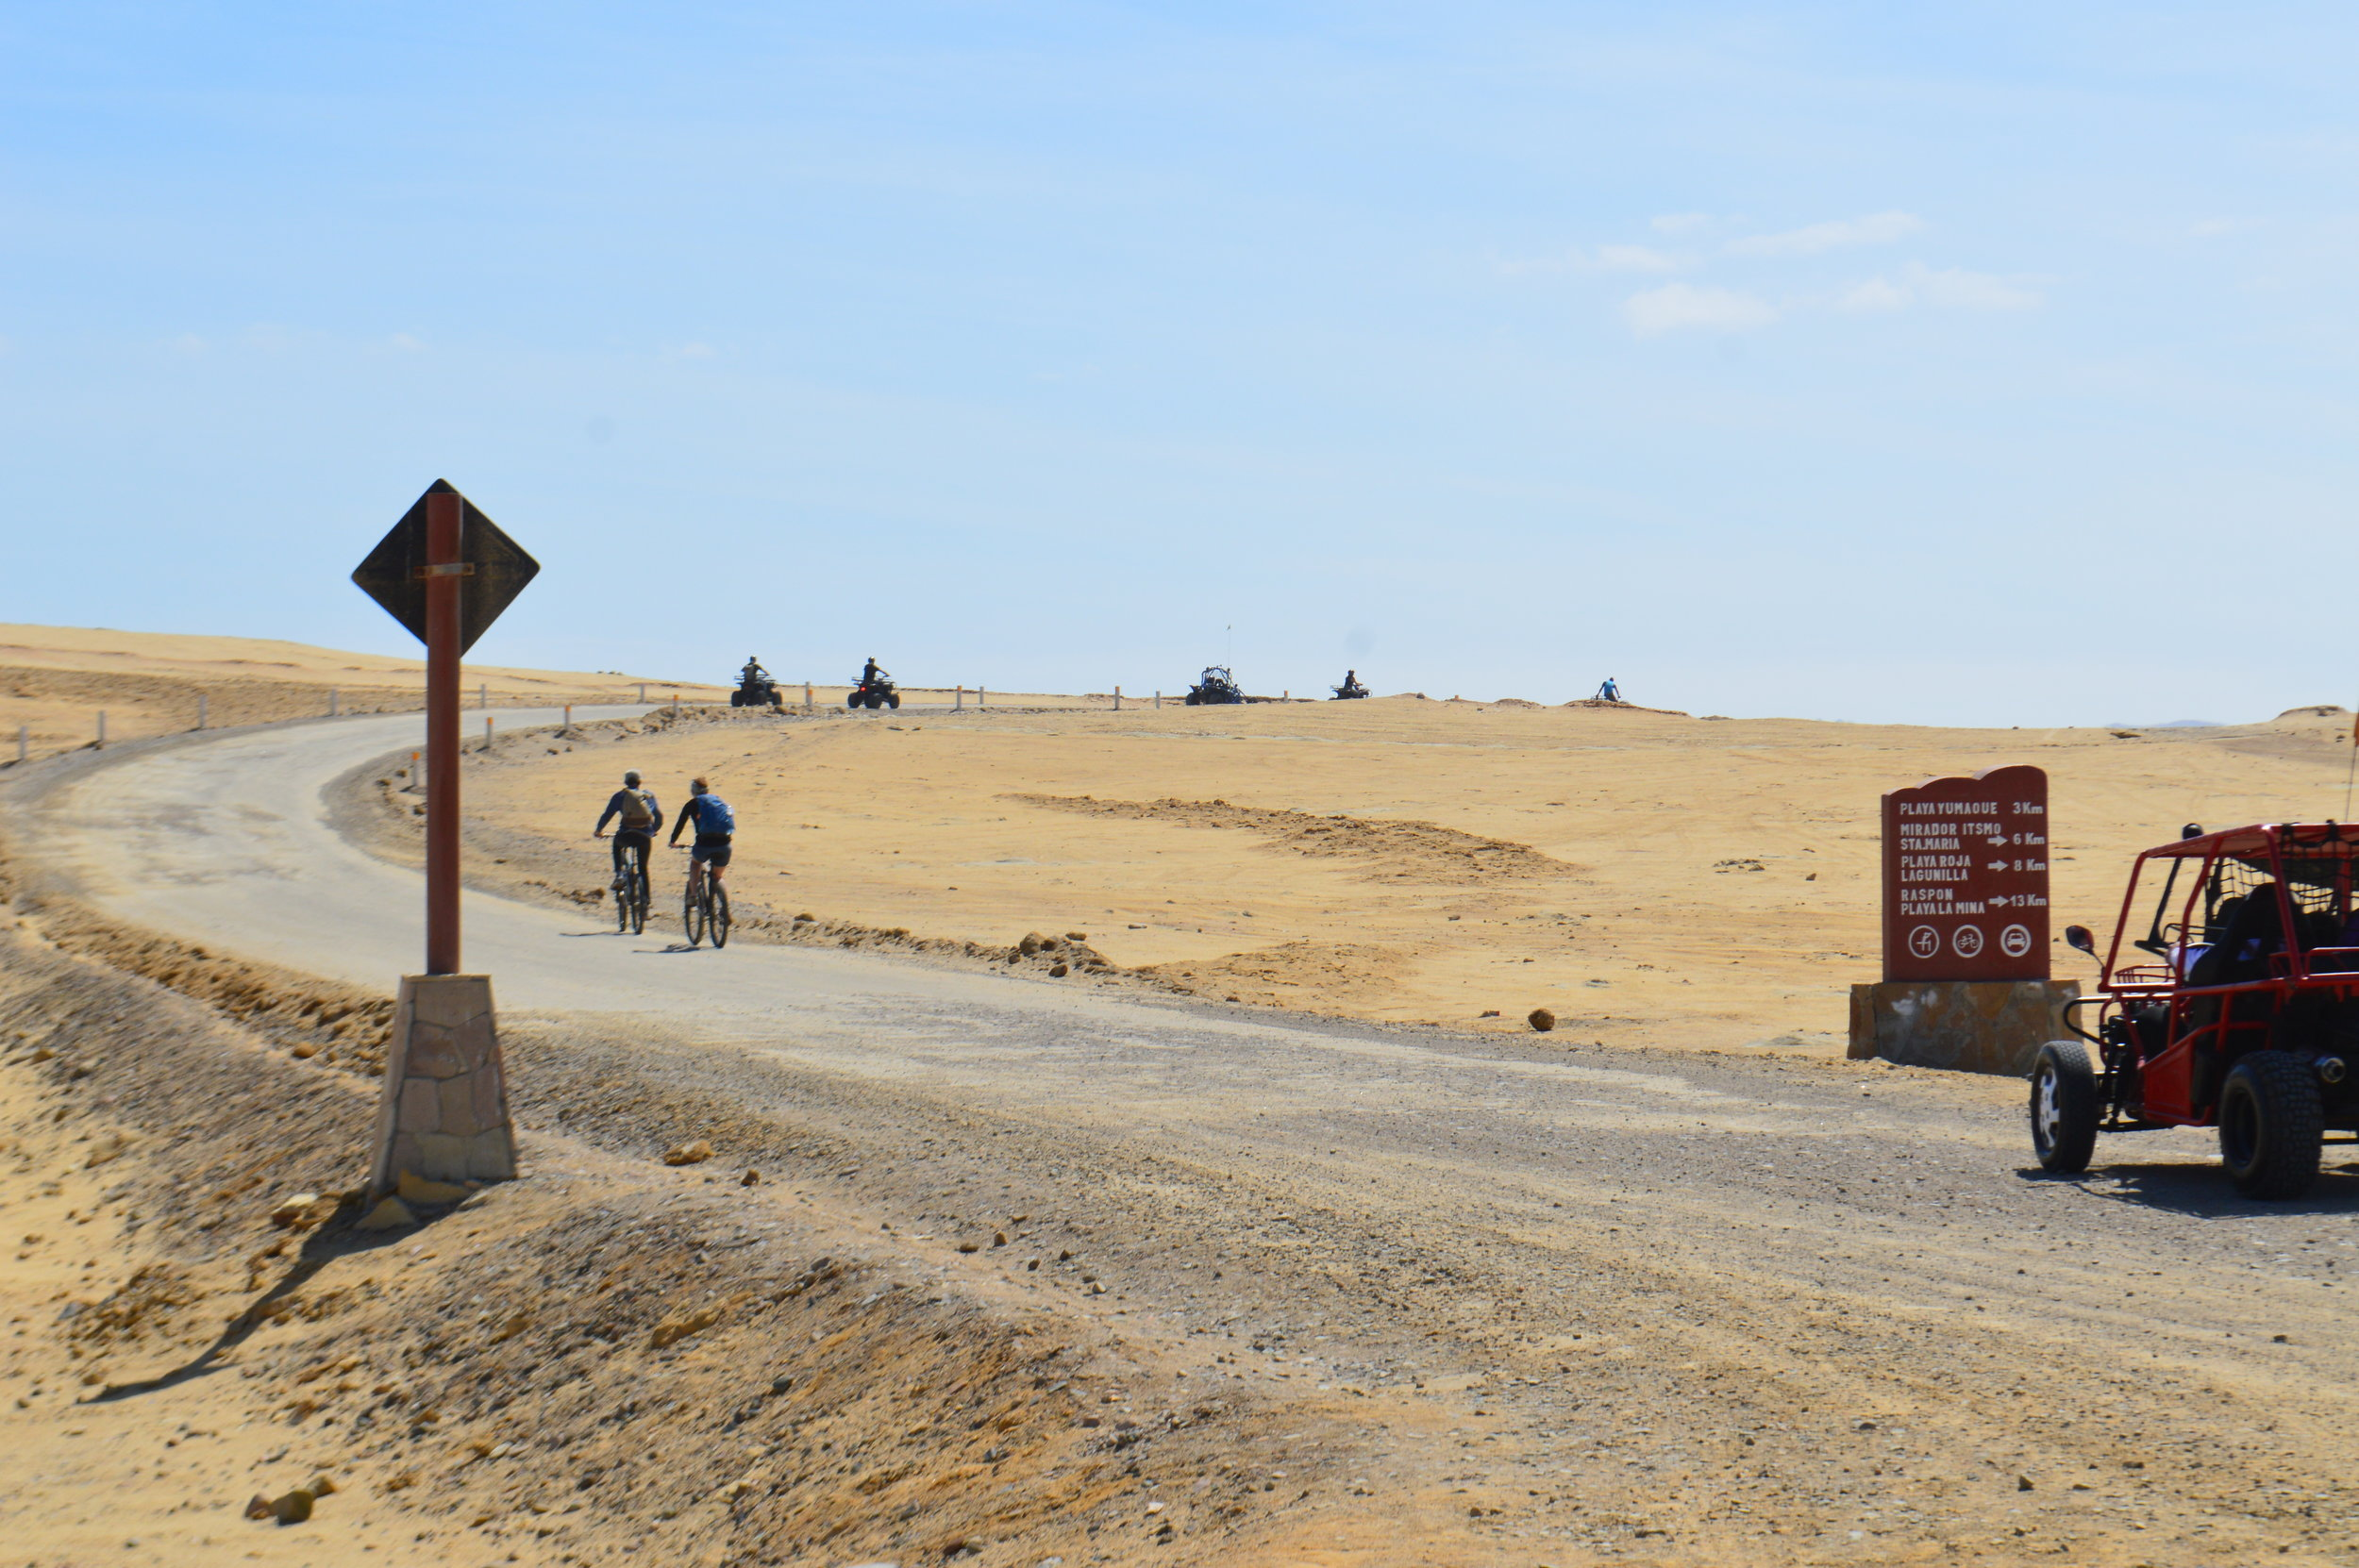 Rent quads or bikes to ride around the national reserve